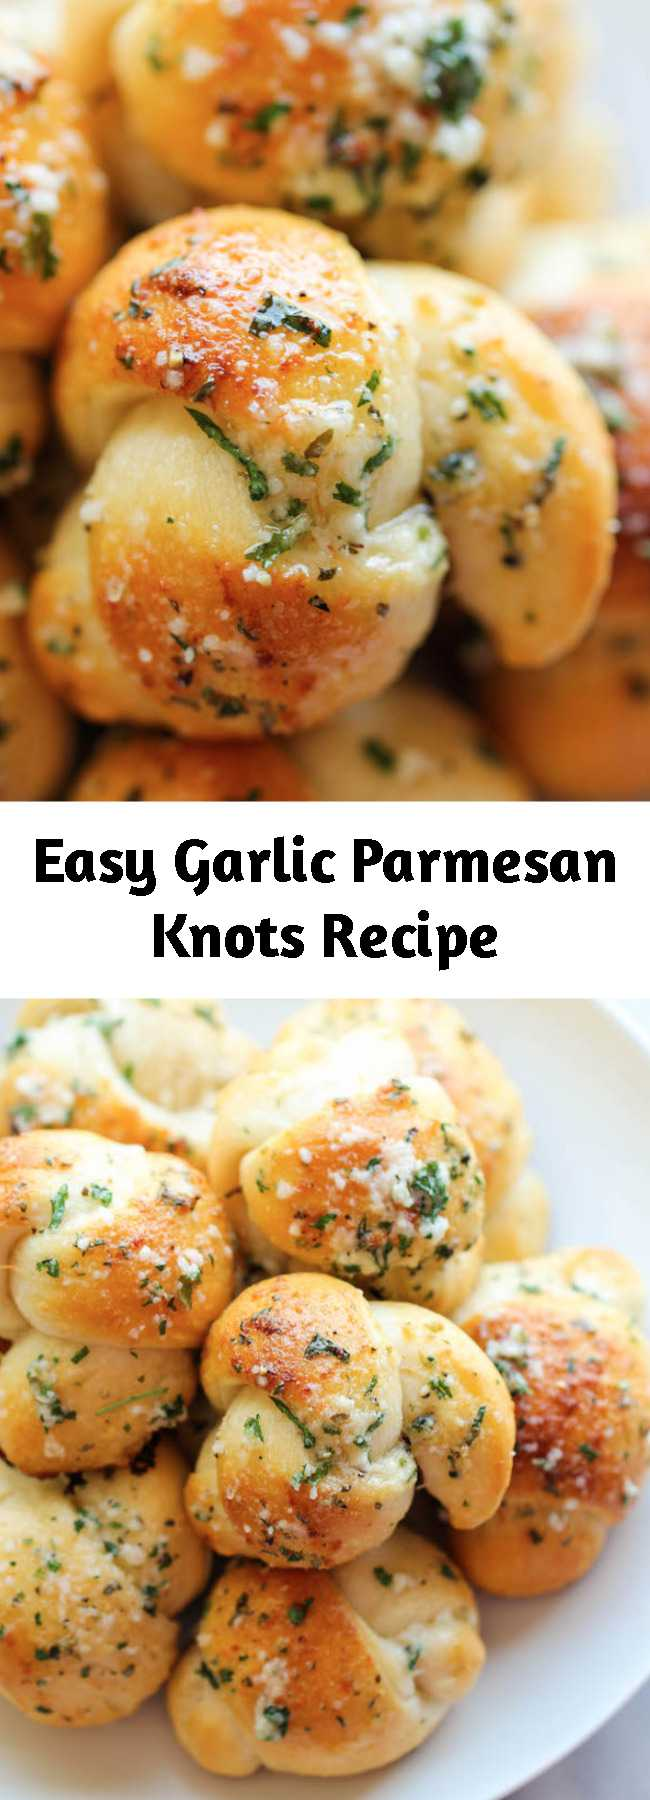 Easy Garlic Parmesan Knots Recipe - Fool-proof, buttery garlic knots that come together in less than 20 min – it doesn't get easier than that!